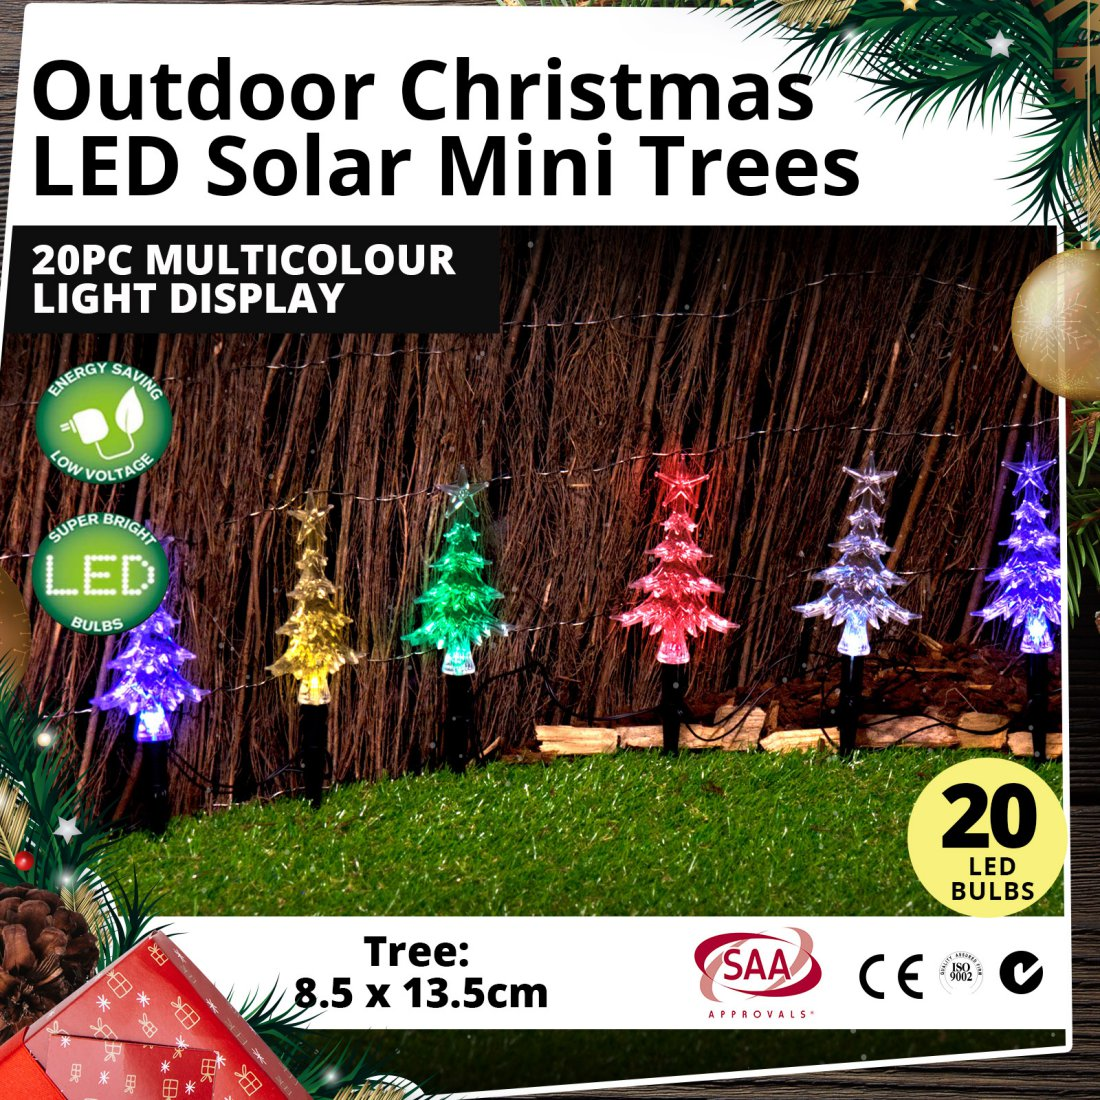 Outdoor LED Solar Mini Trees 20pcs Multicolour Light Christmas Display